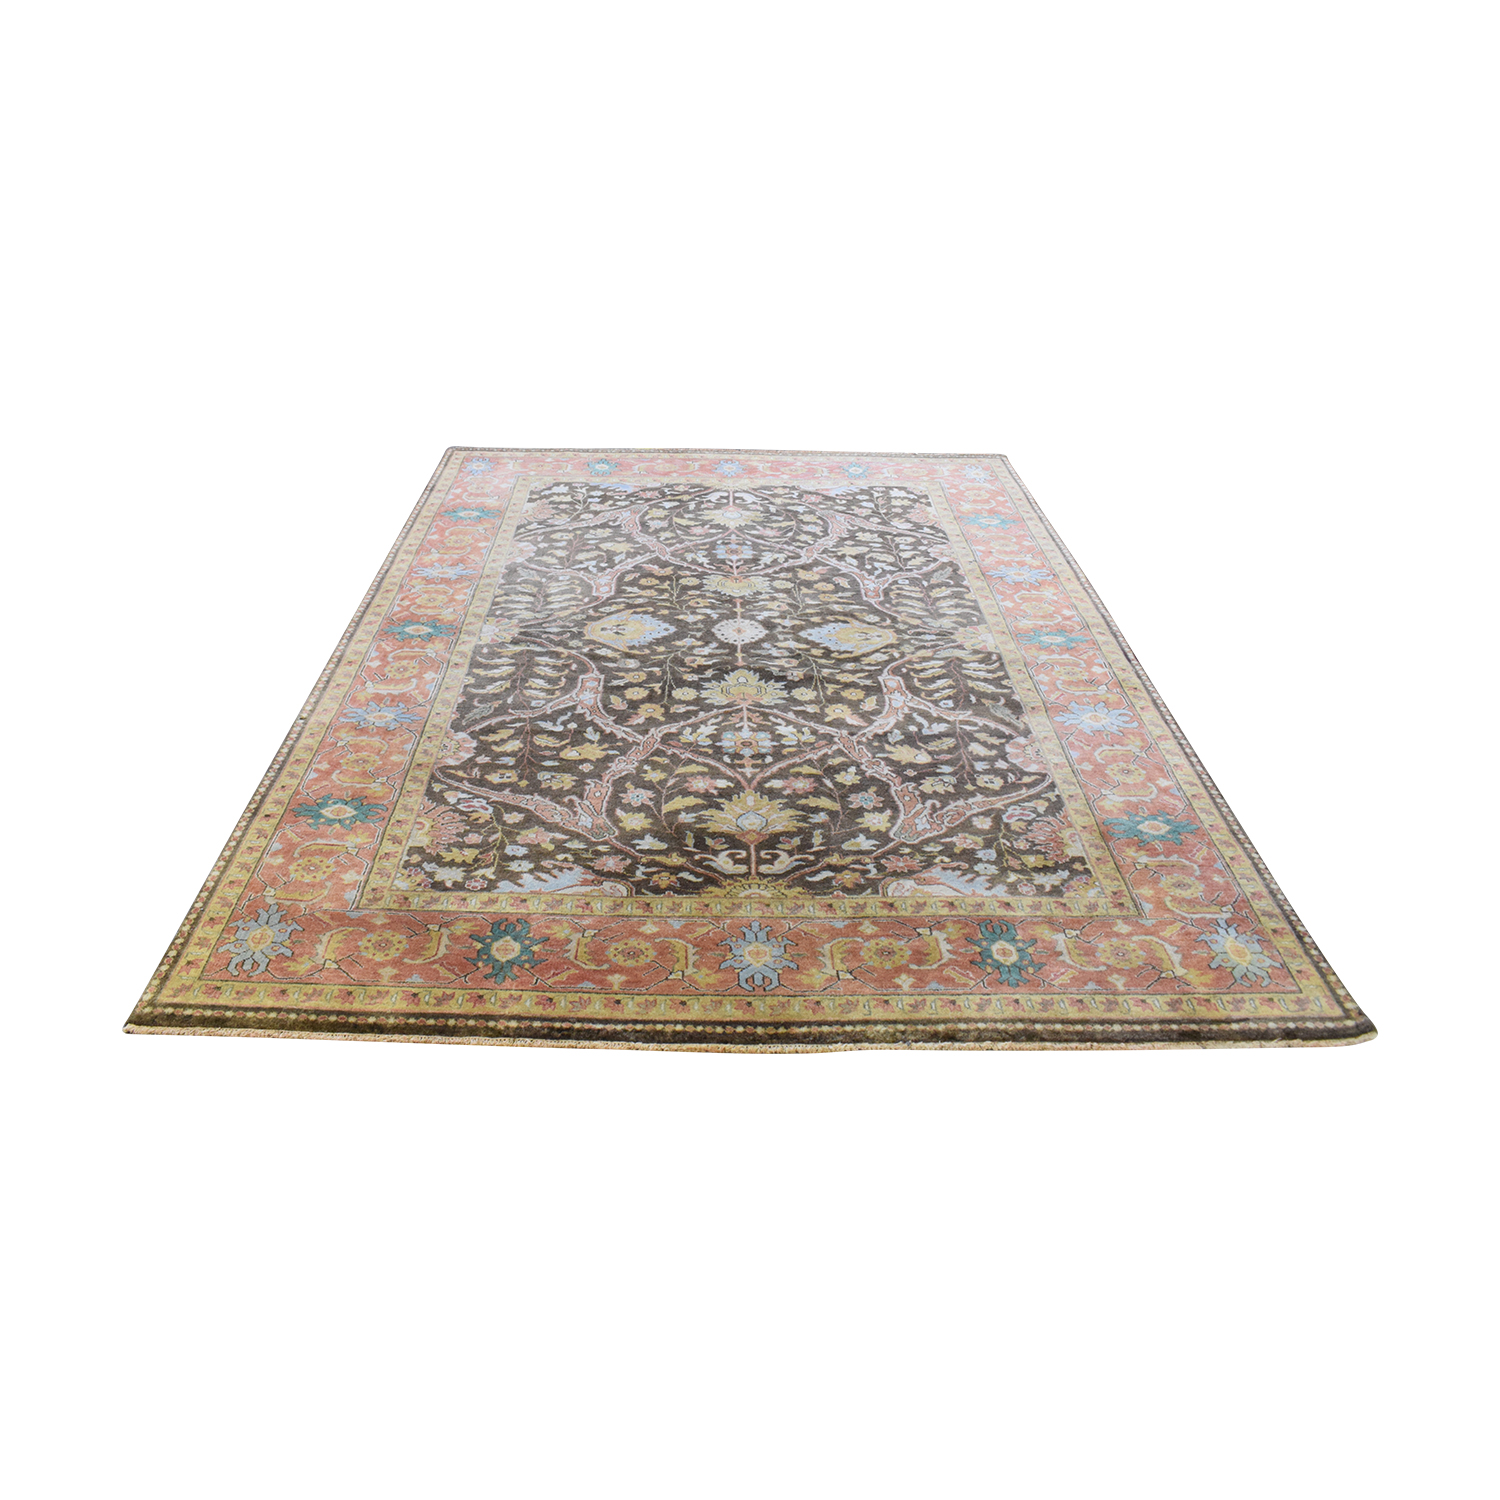 Hand-Knotted Oriental Rug nj